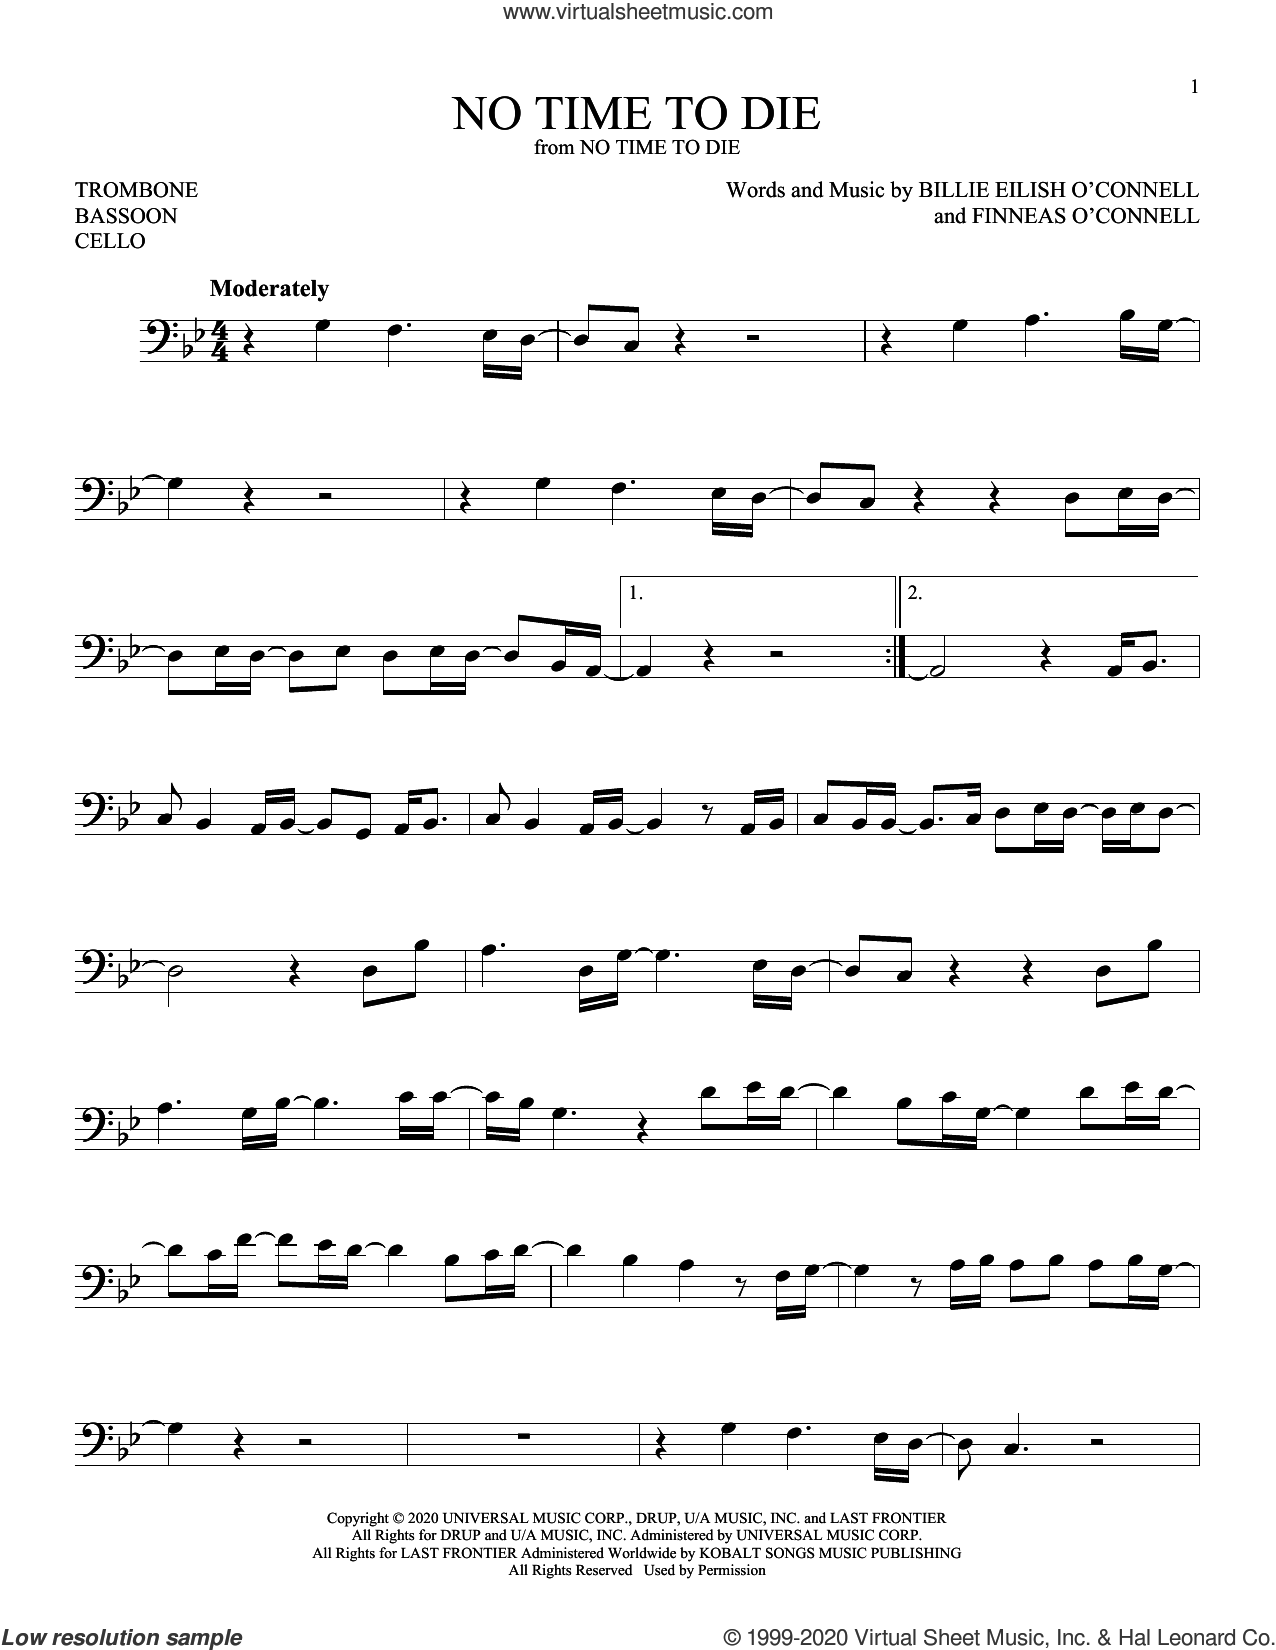 No Time To Die sheet music for Solo Instrument (bass clef) by Billie Eilish, intermediate skill level